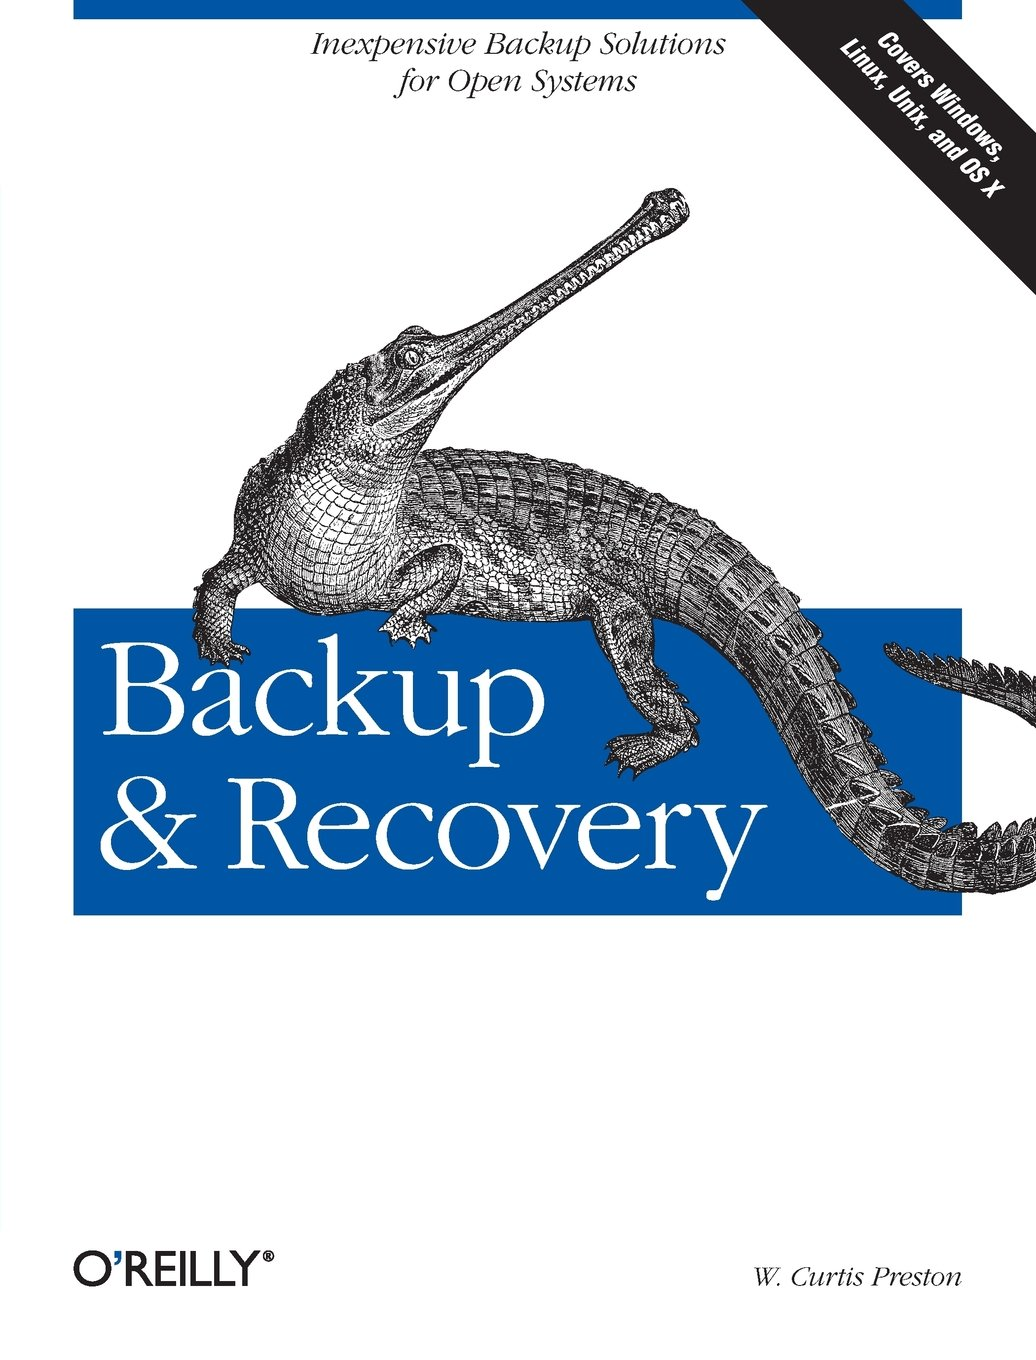 Backup & Recovery: Inexpensive Backup Solutions for Open Systems pdf